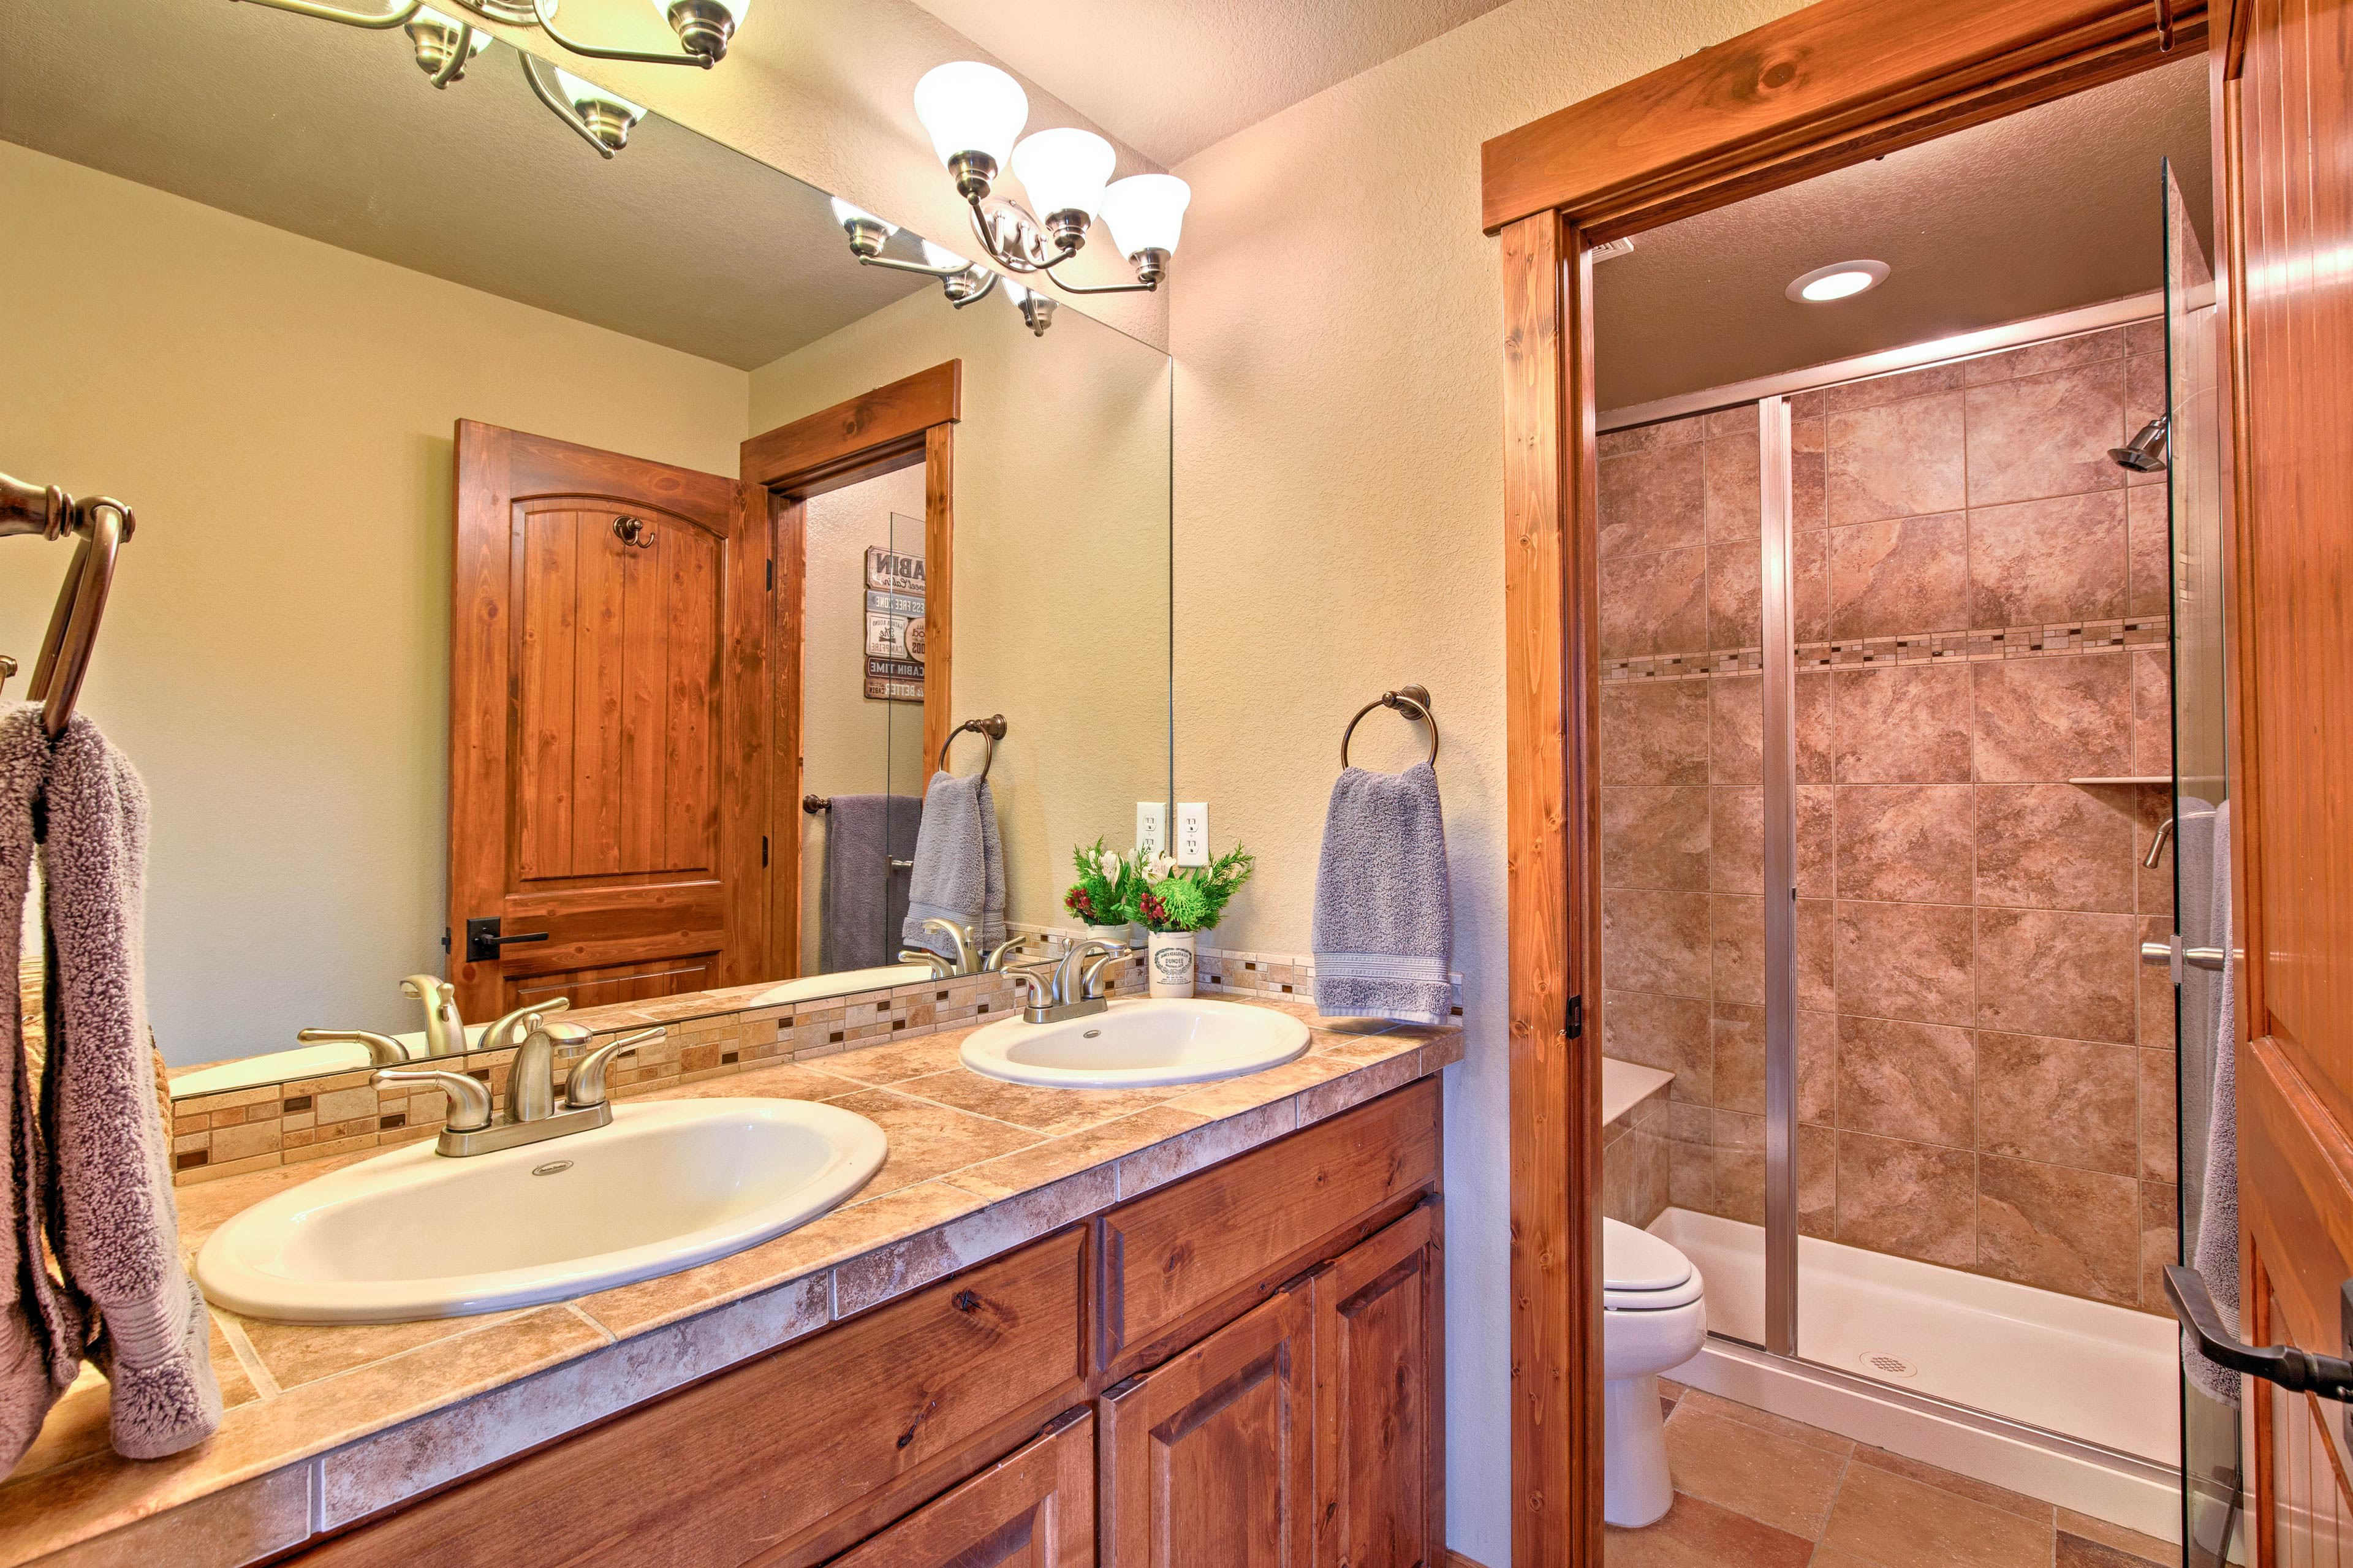 Rinse off after long hikes in the en-suite bathroom with a walk-in shower.